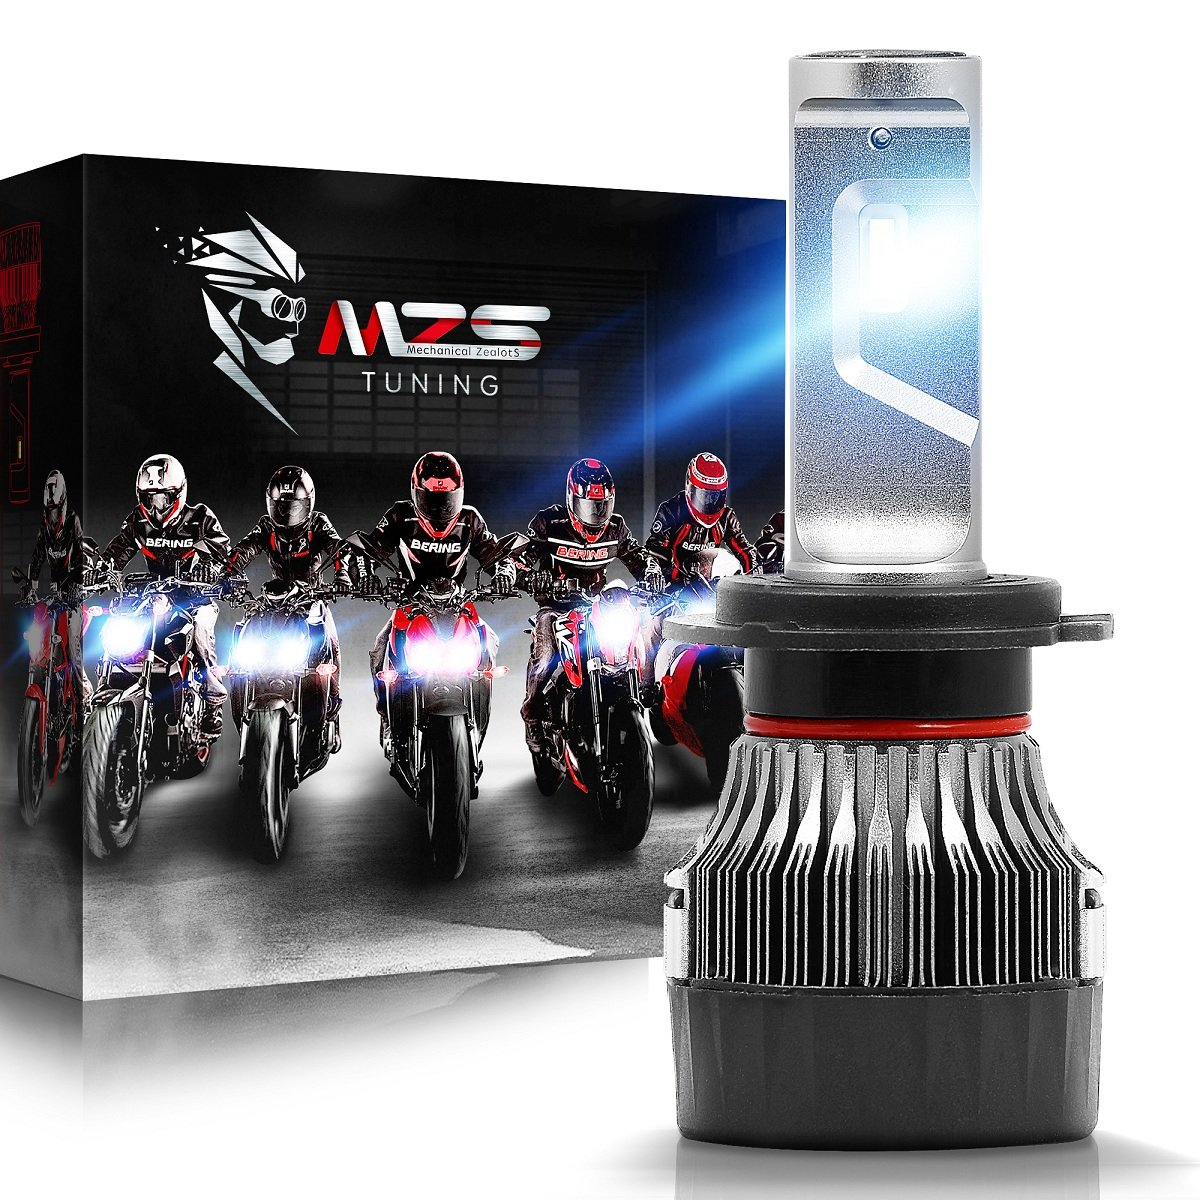 MZS H7 LED Headlight Bulb Single for Motorcycle,Mini Conversion Kit - CREE Chips - 6500K 5000Lm Extremely Bright by MZS